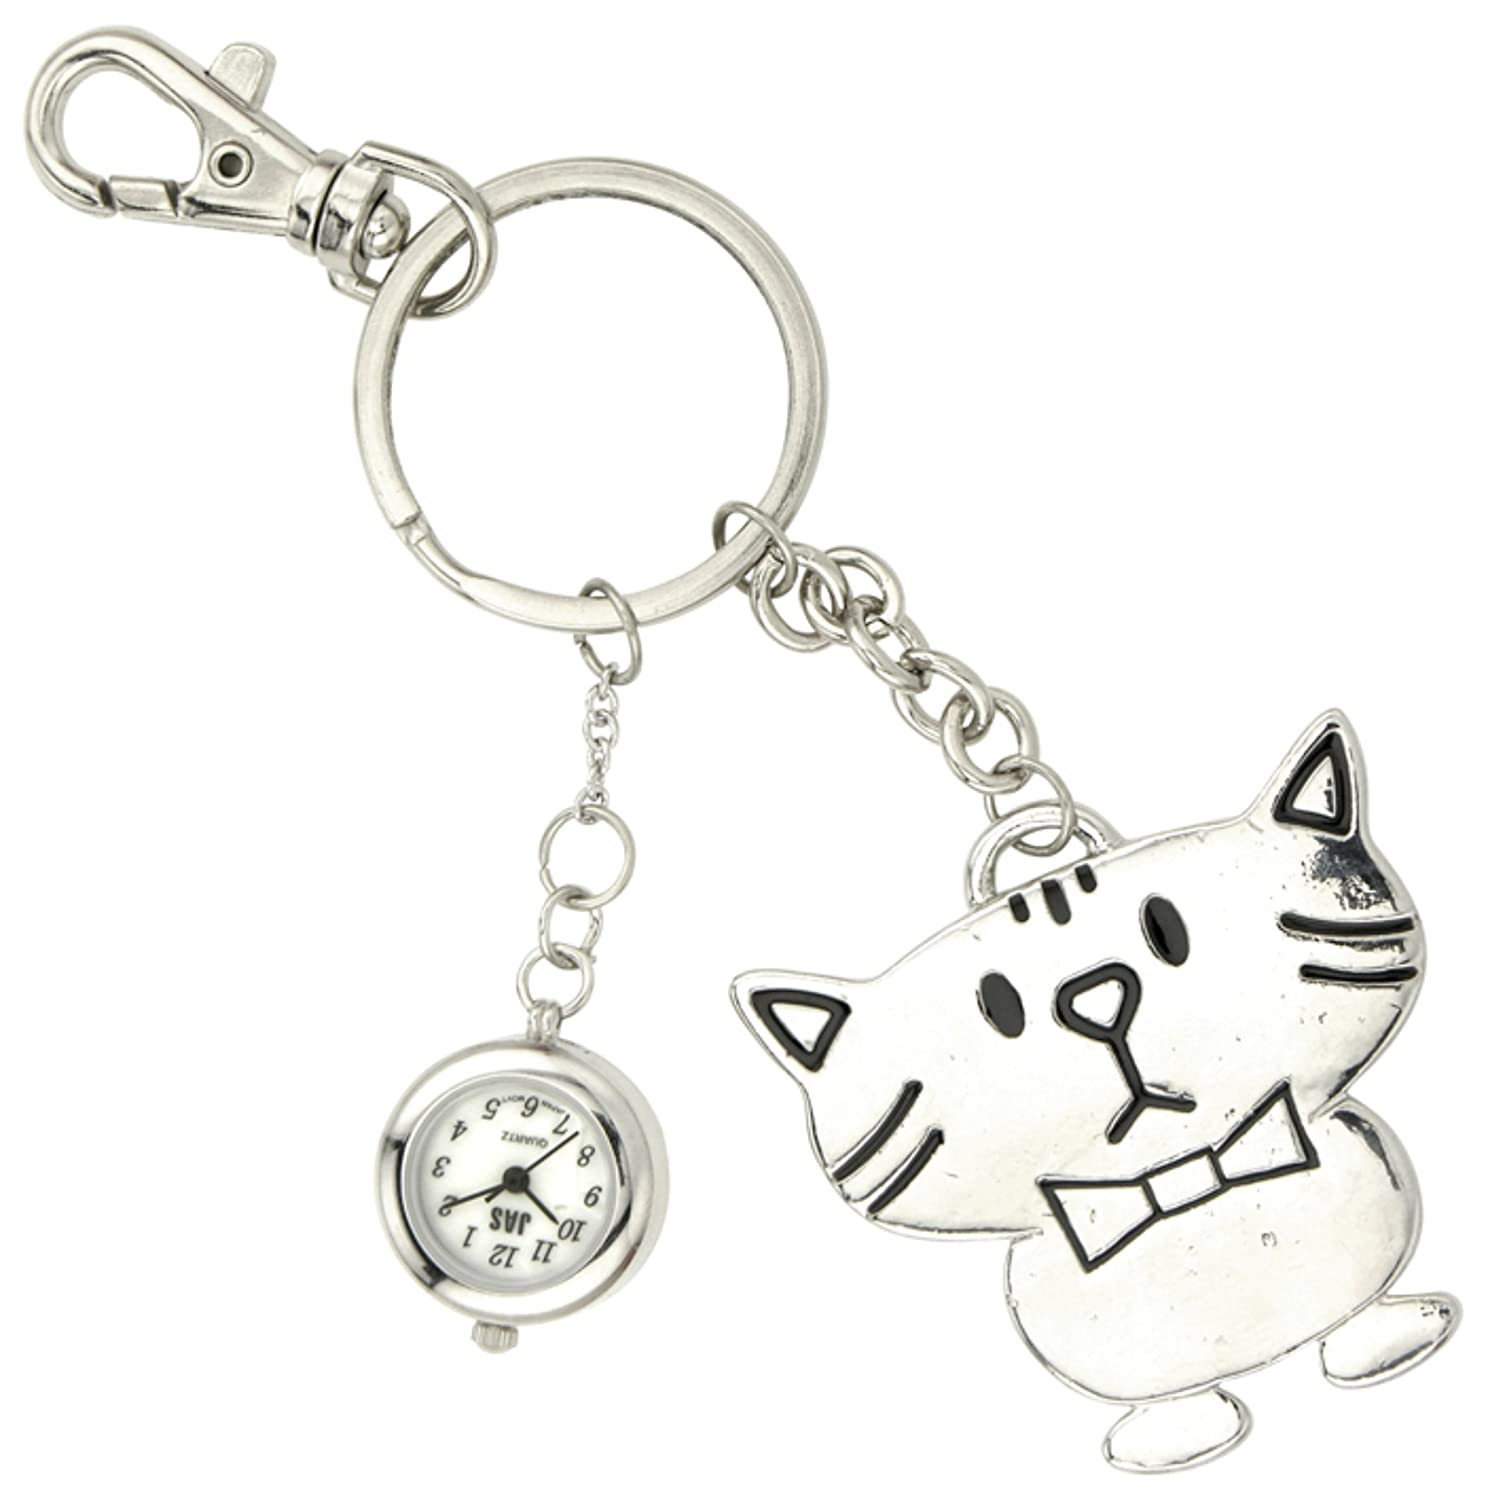 JasユニセックスNovelty Belt Fob / Keychain Watch Cool Cat Silver Tone   B00G2SSNKS